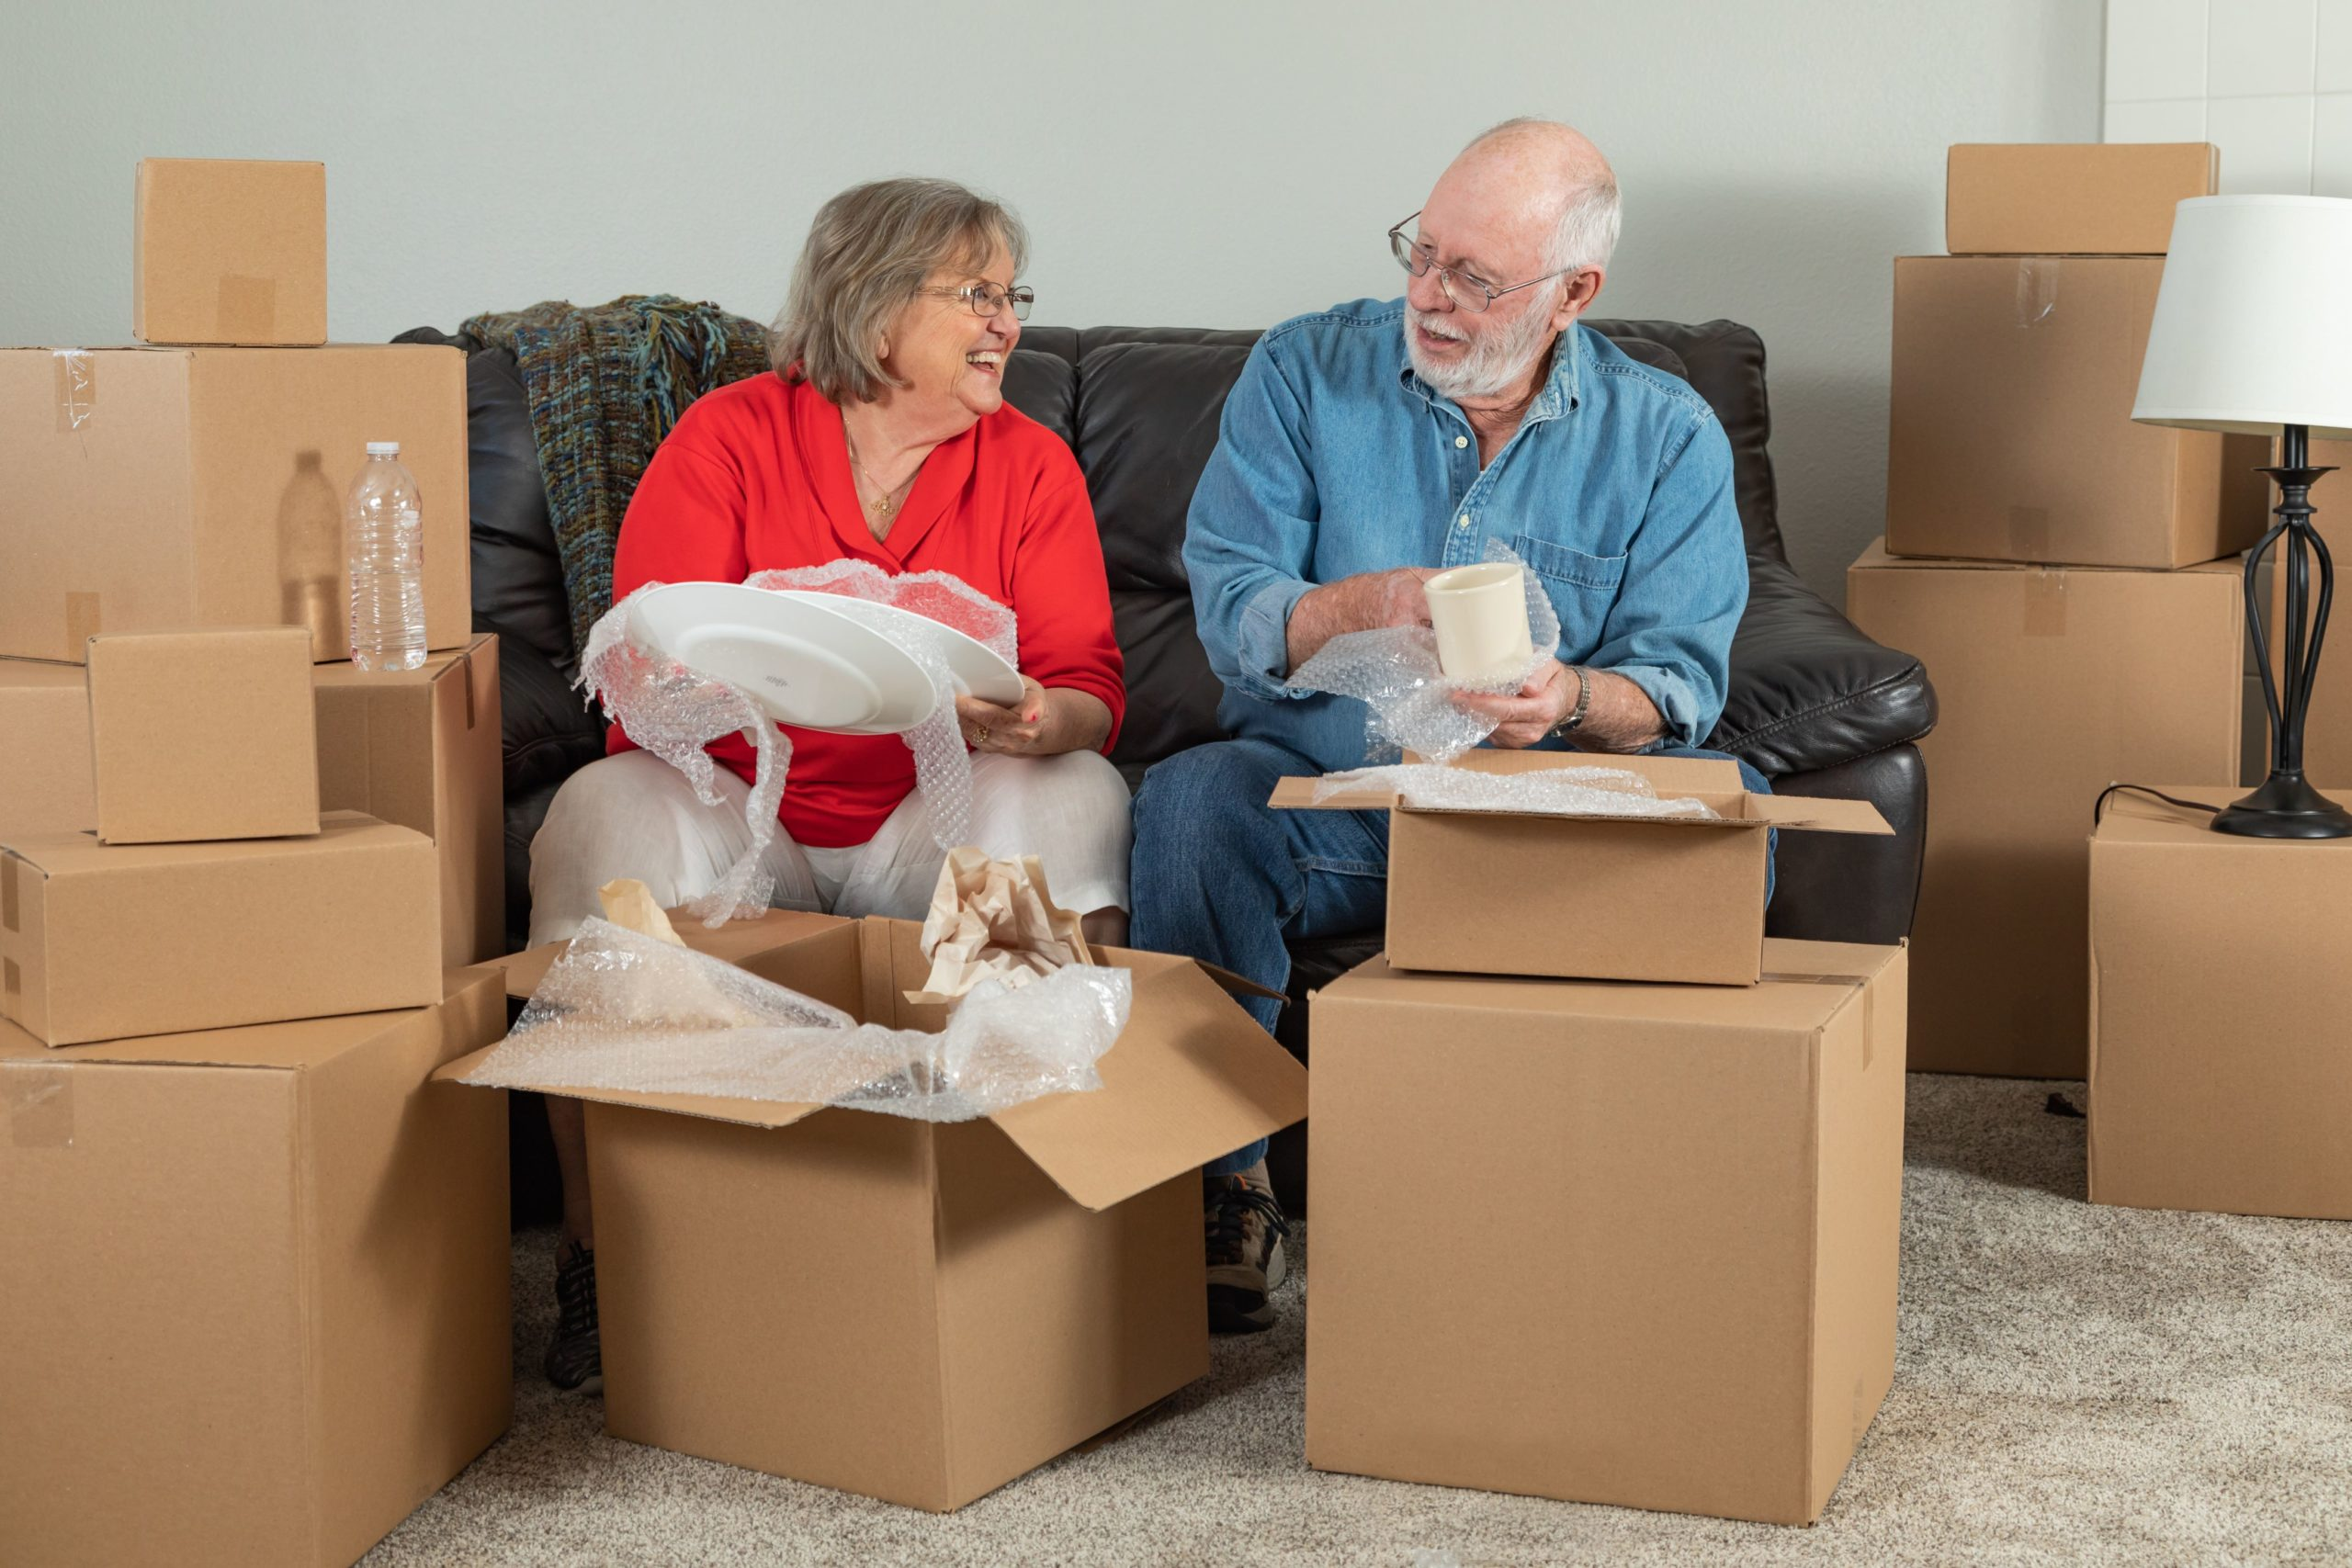 senior adult couple downsizing home by packing boxes